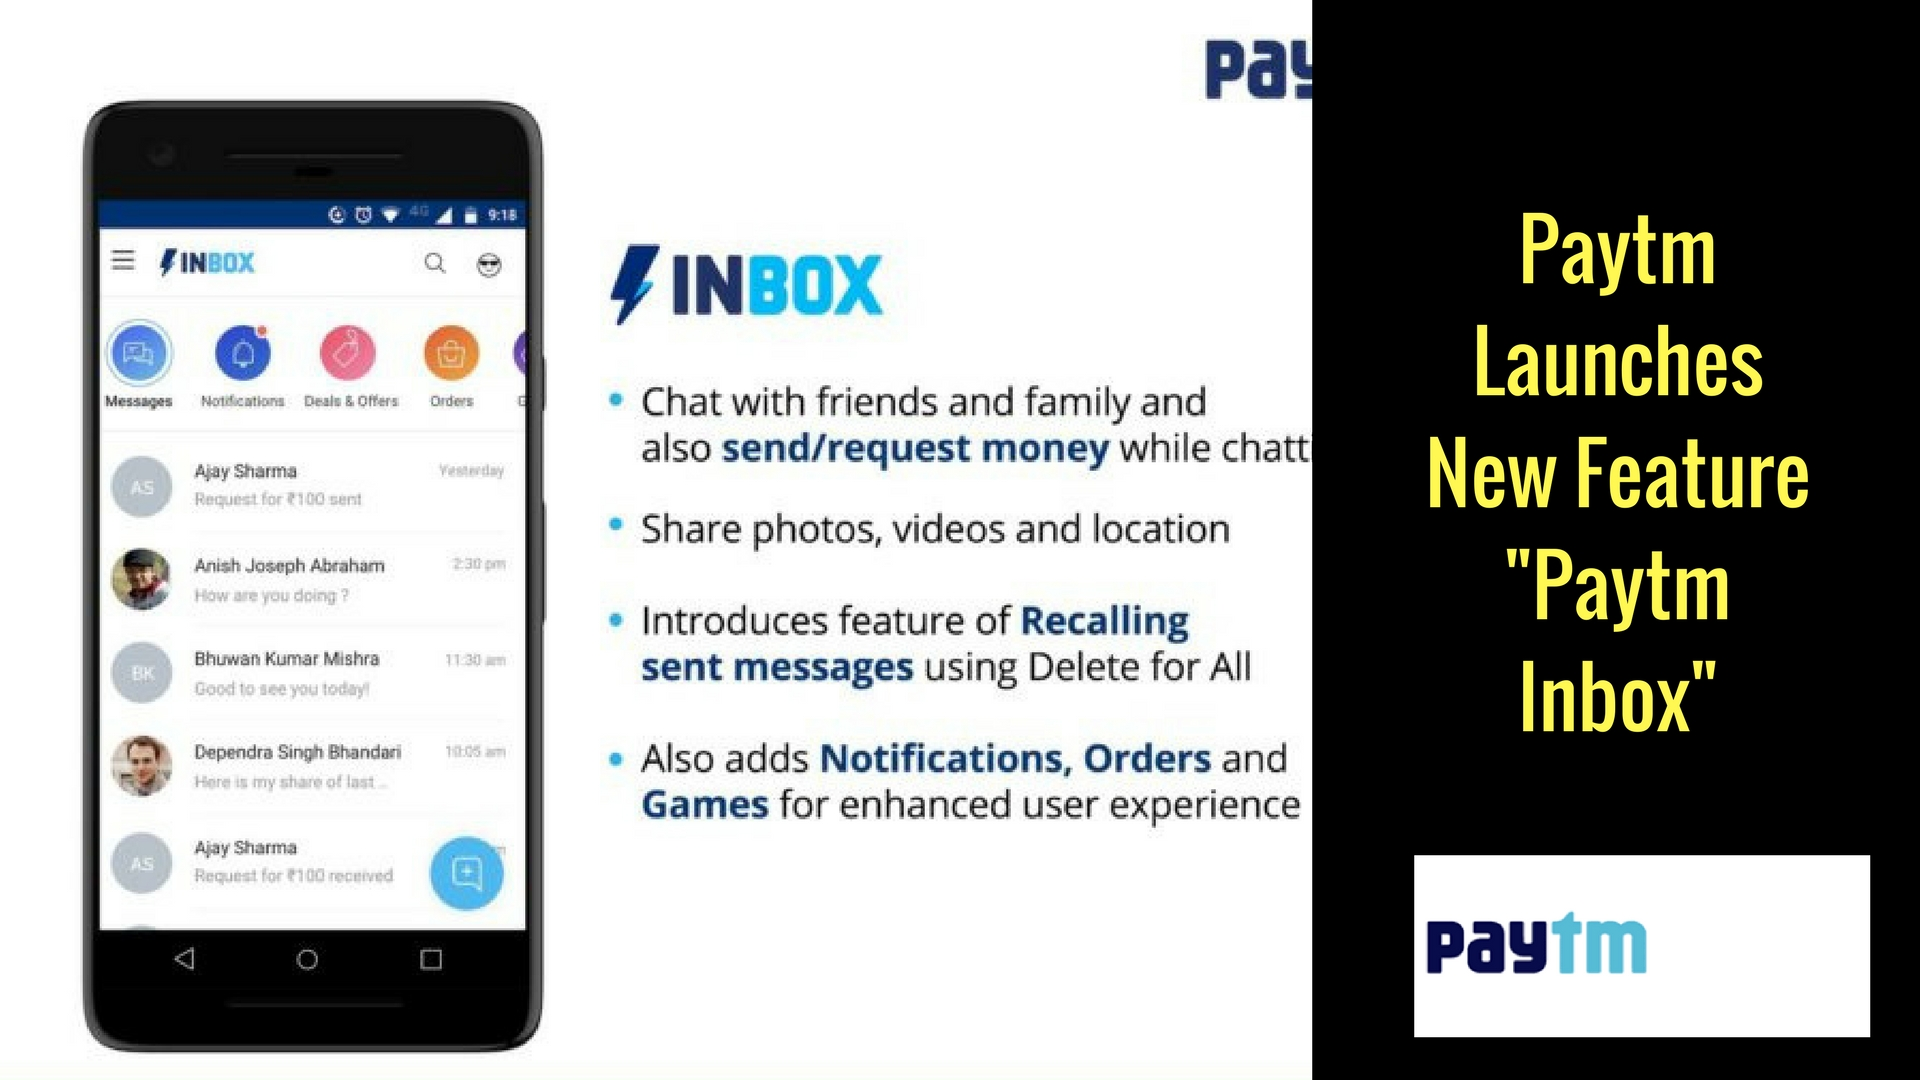 Paytm Has Launched 'Inbox'